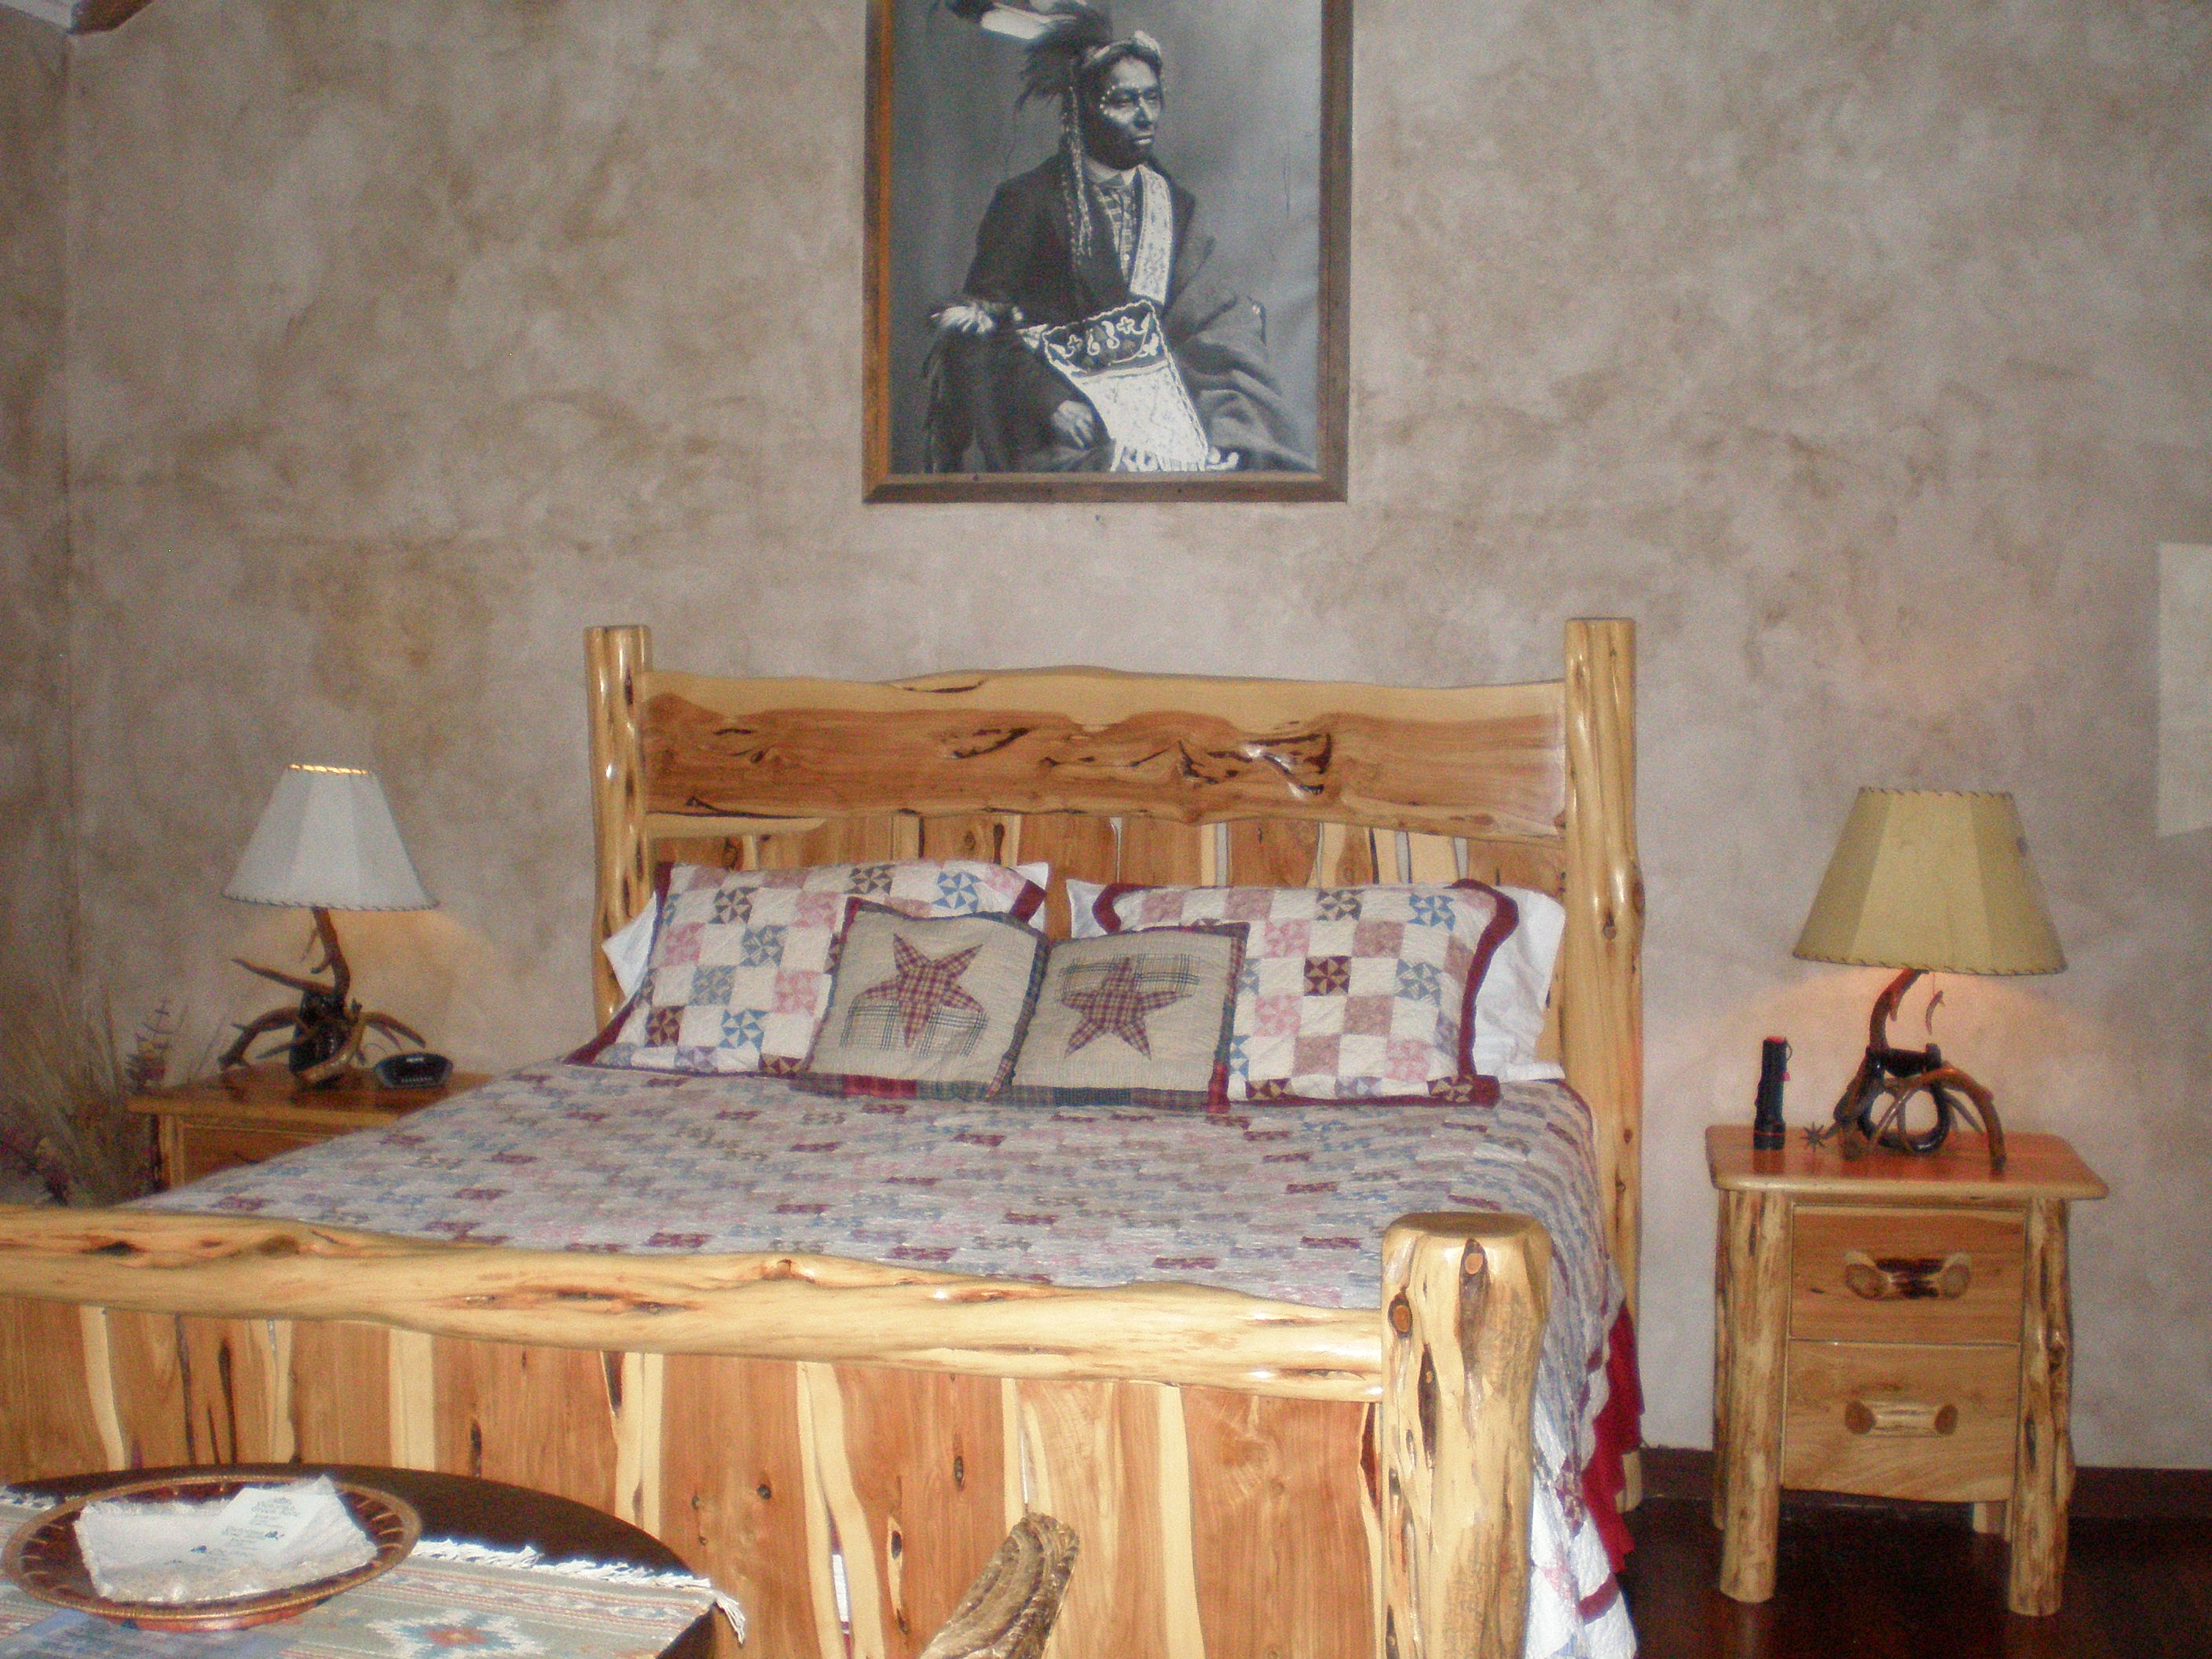 Das College Haus Bed and Breakfast